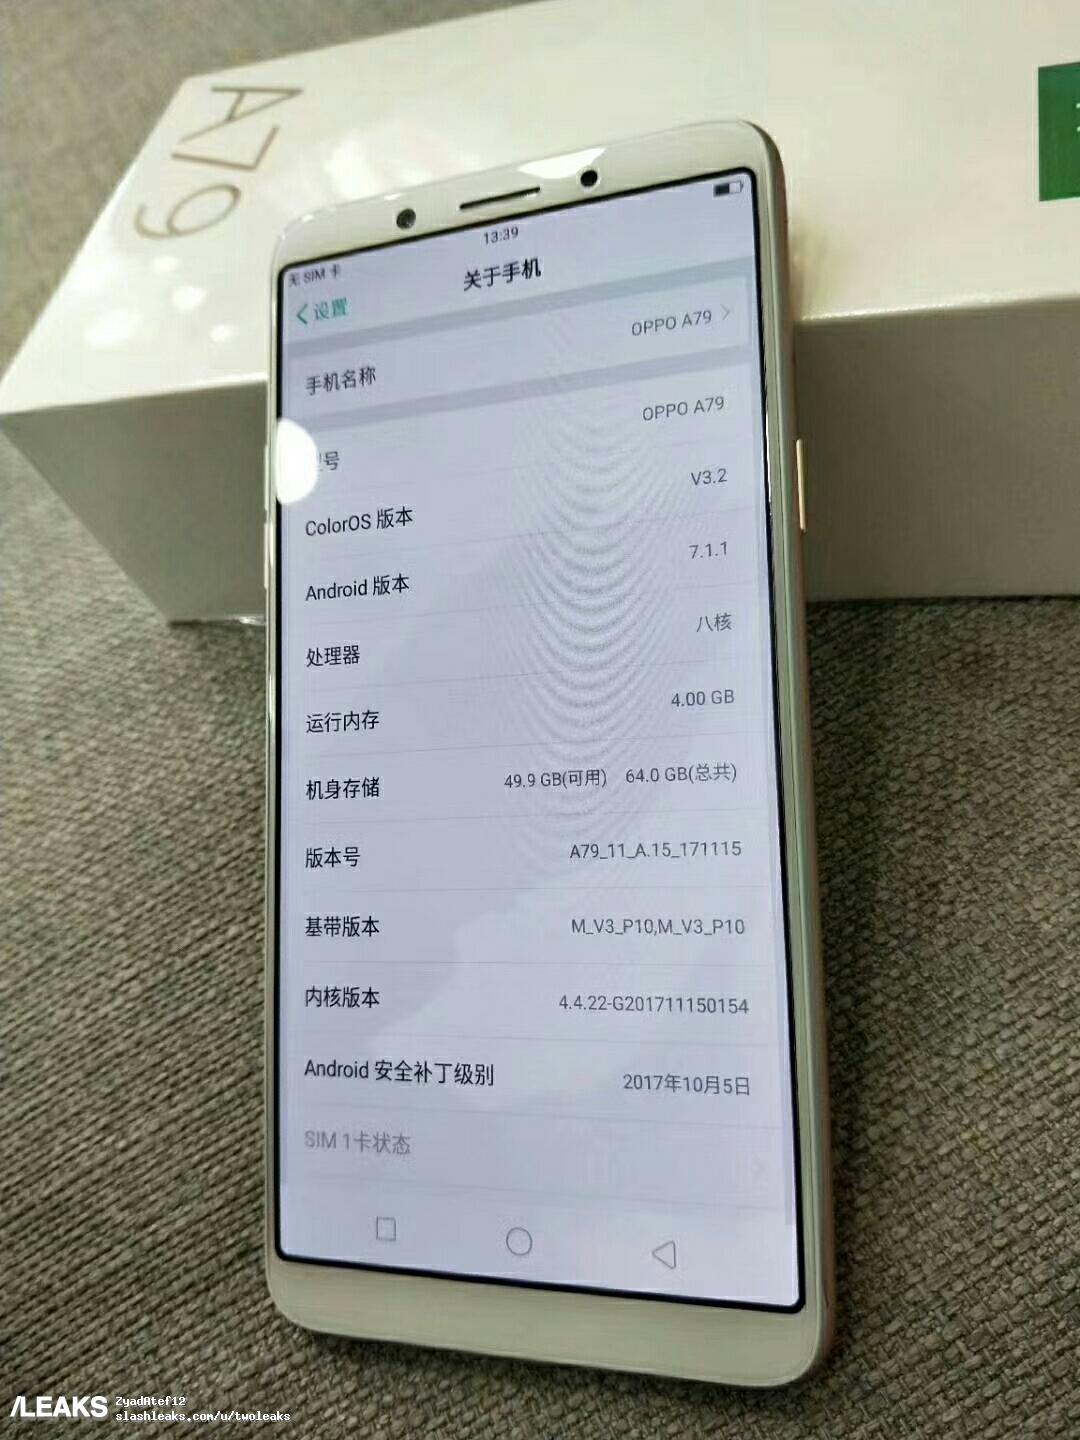 OPPO New Model A79 Real Life Image Leaked -Unboxed